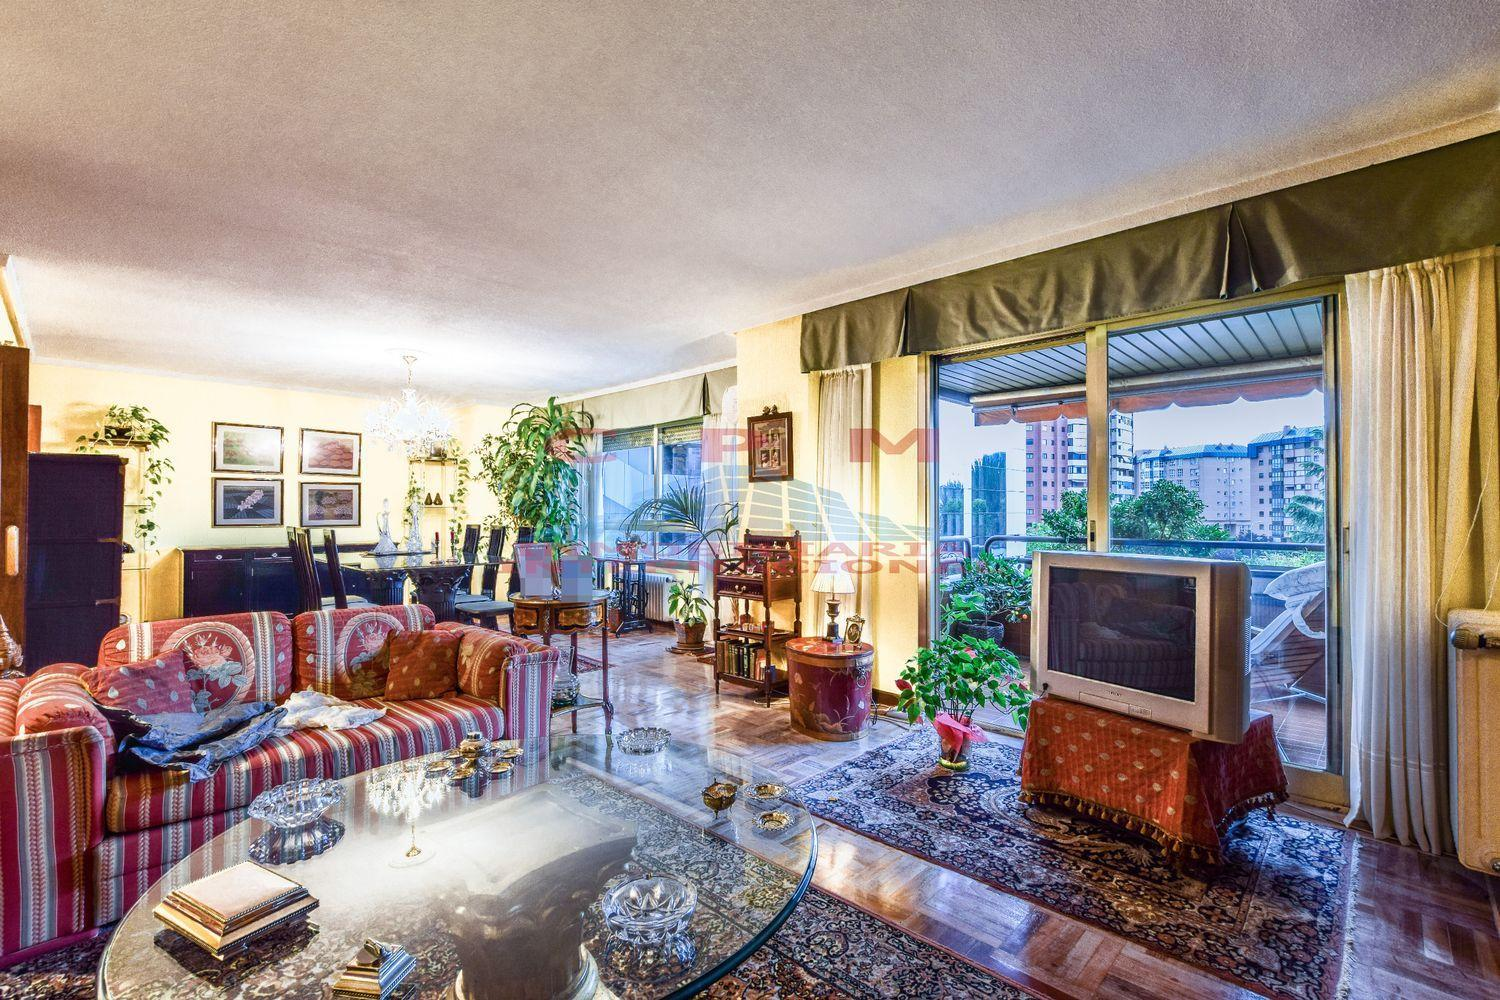 Barrio Chamartin Madrid. Barrio Chamartin Madrid With Barrio ...